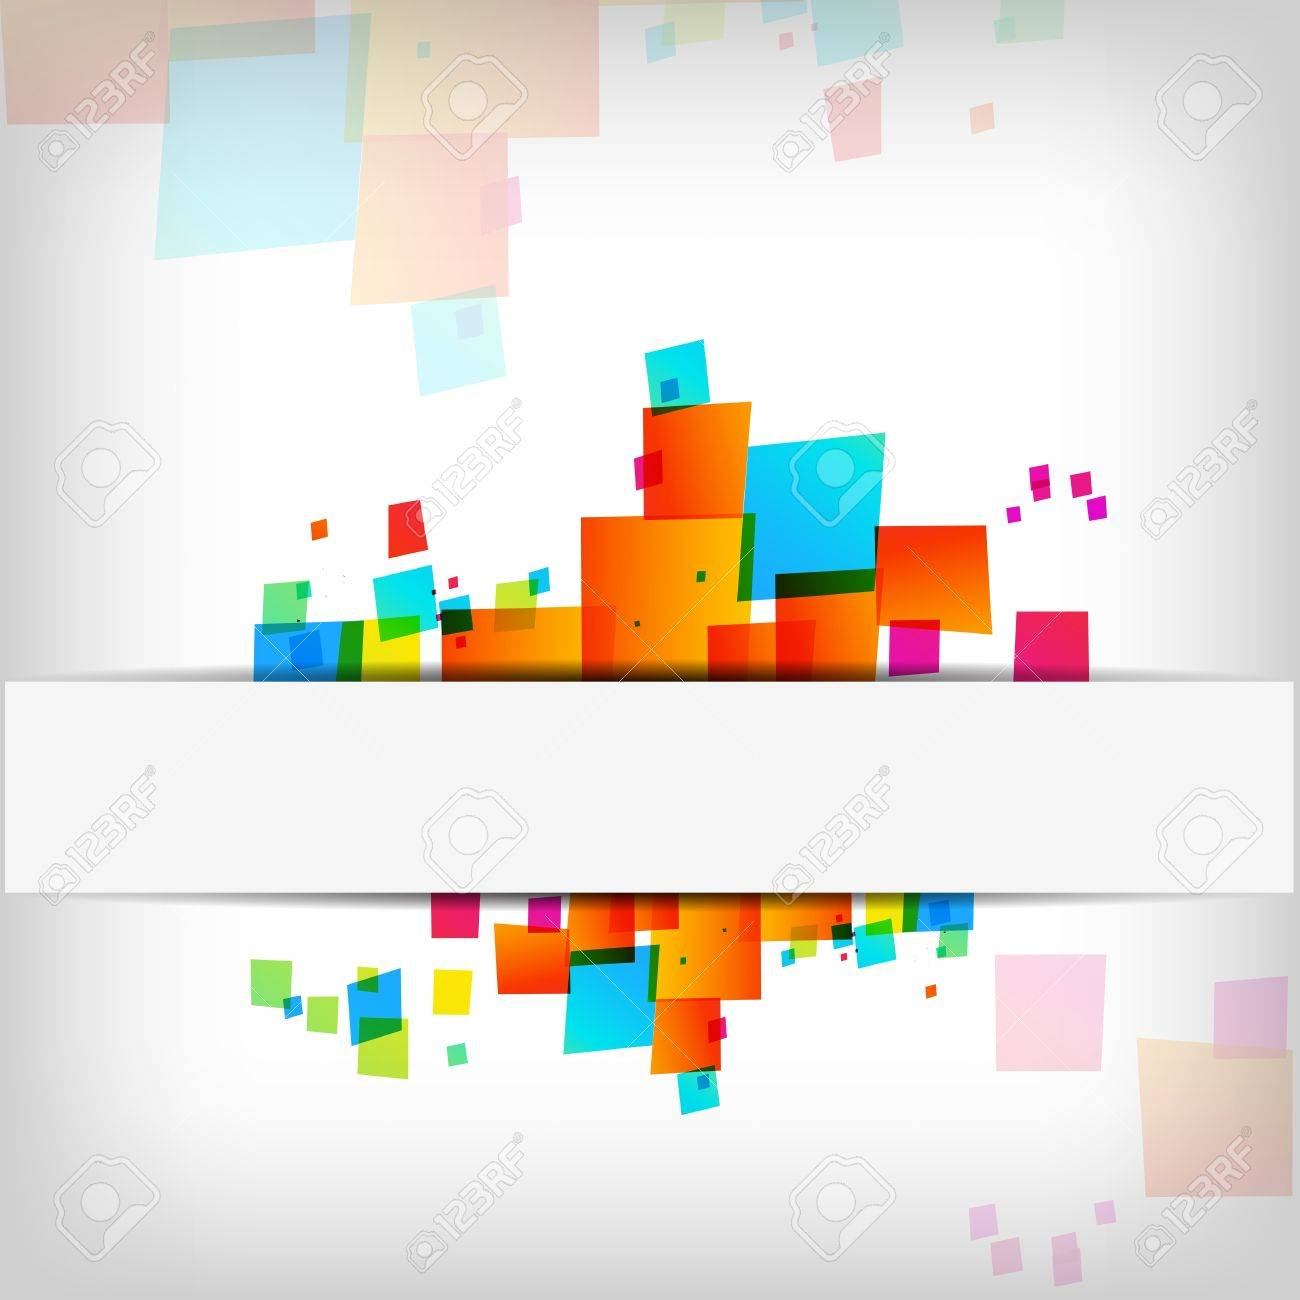 Abstract colorful background - Vector Illustration Stock Vector - 12201920